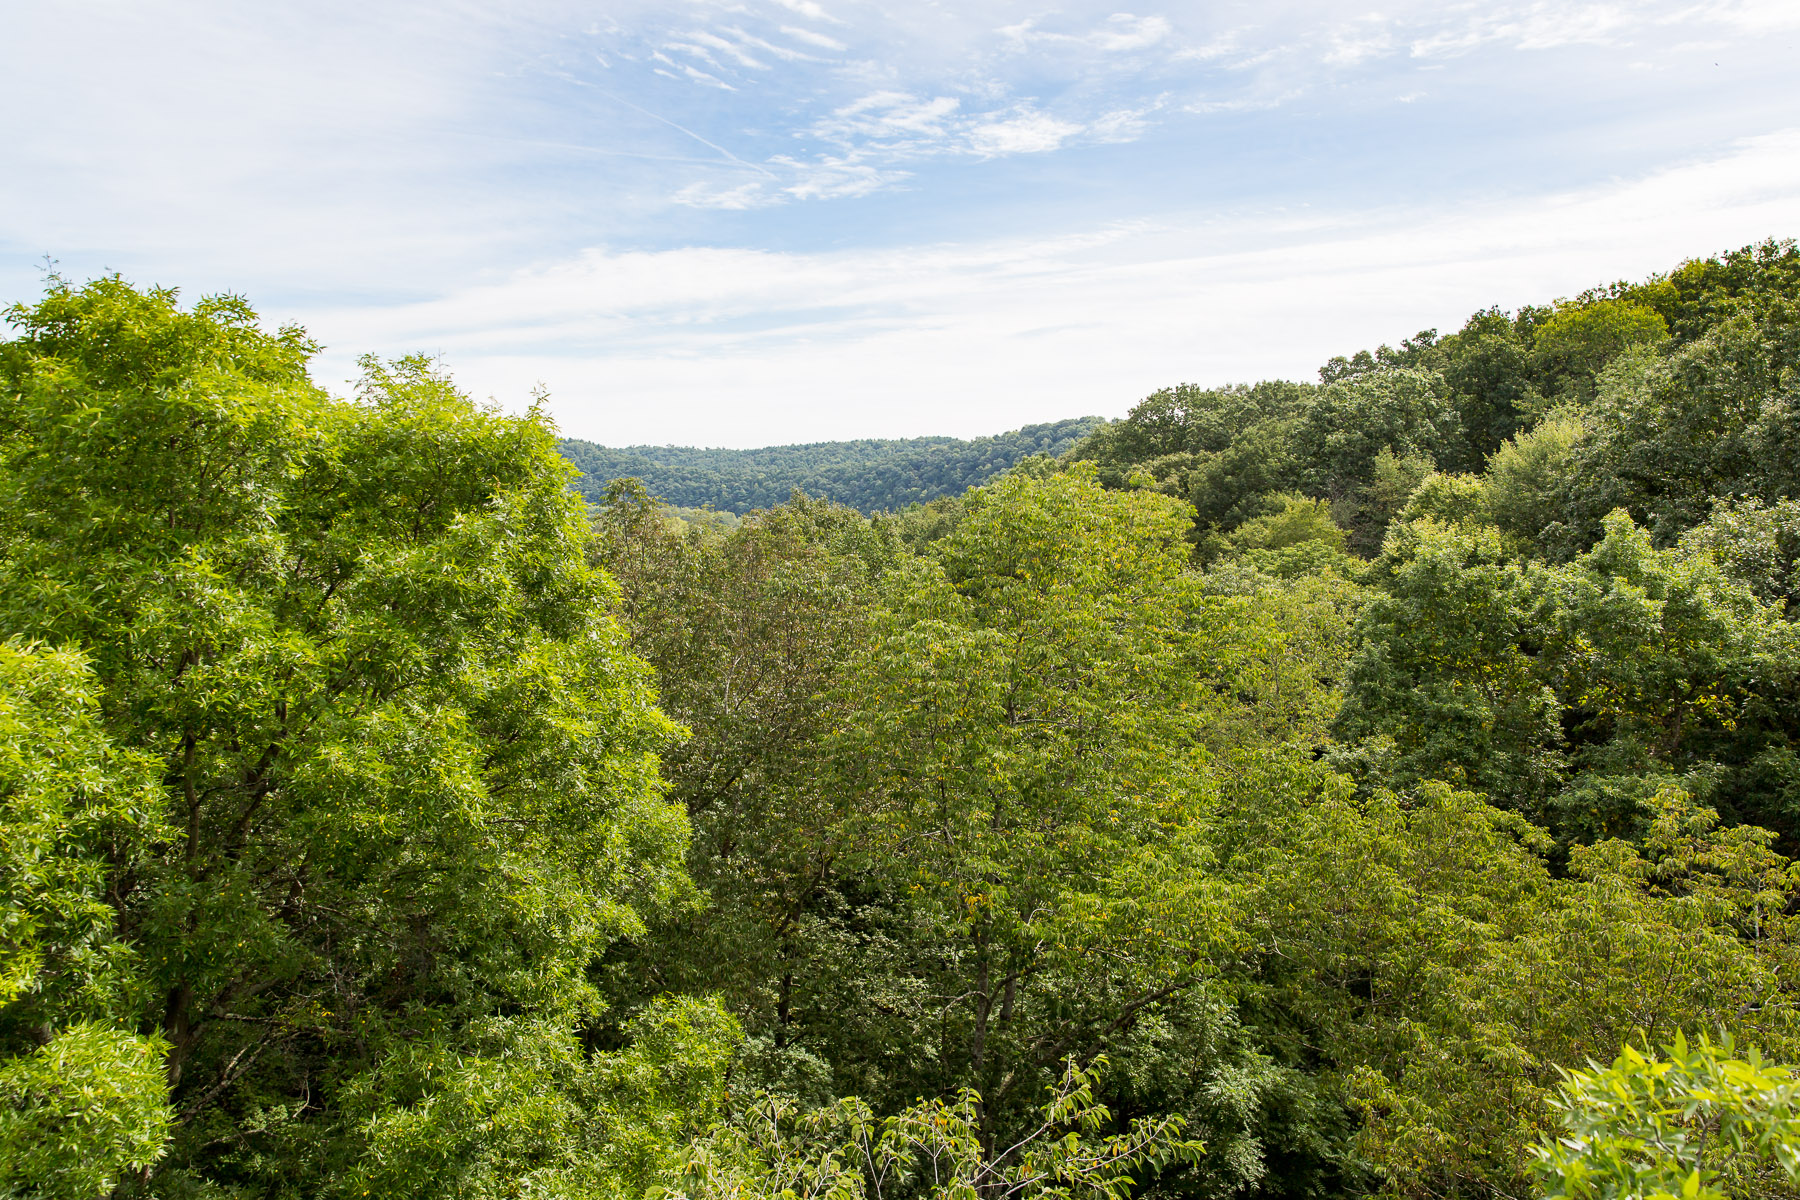 Tree Frog Canopy Tours is conveniently located a few minutes south of Loudonville Ohio - the heart of Mohican Country. & Directions - Tree Frog Canopy Tours